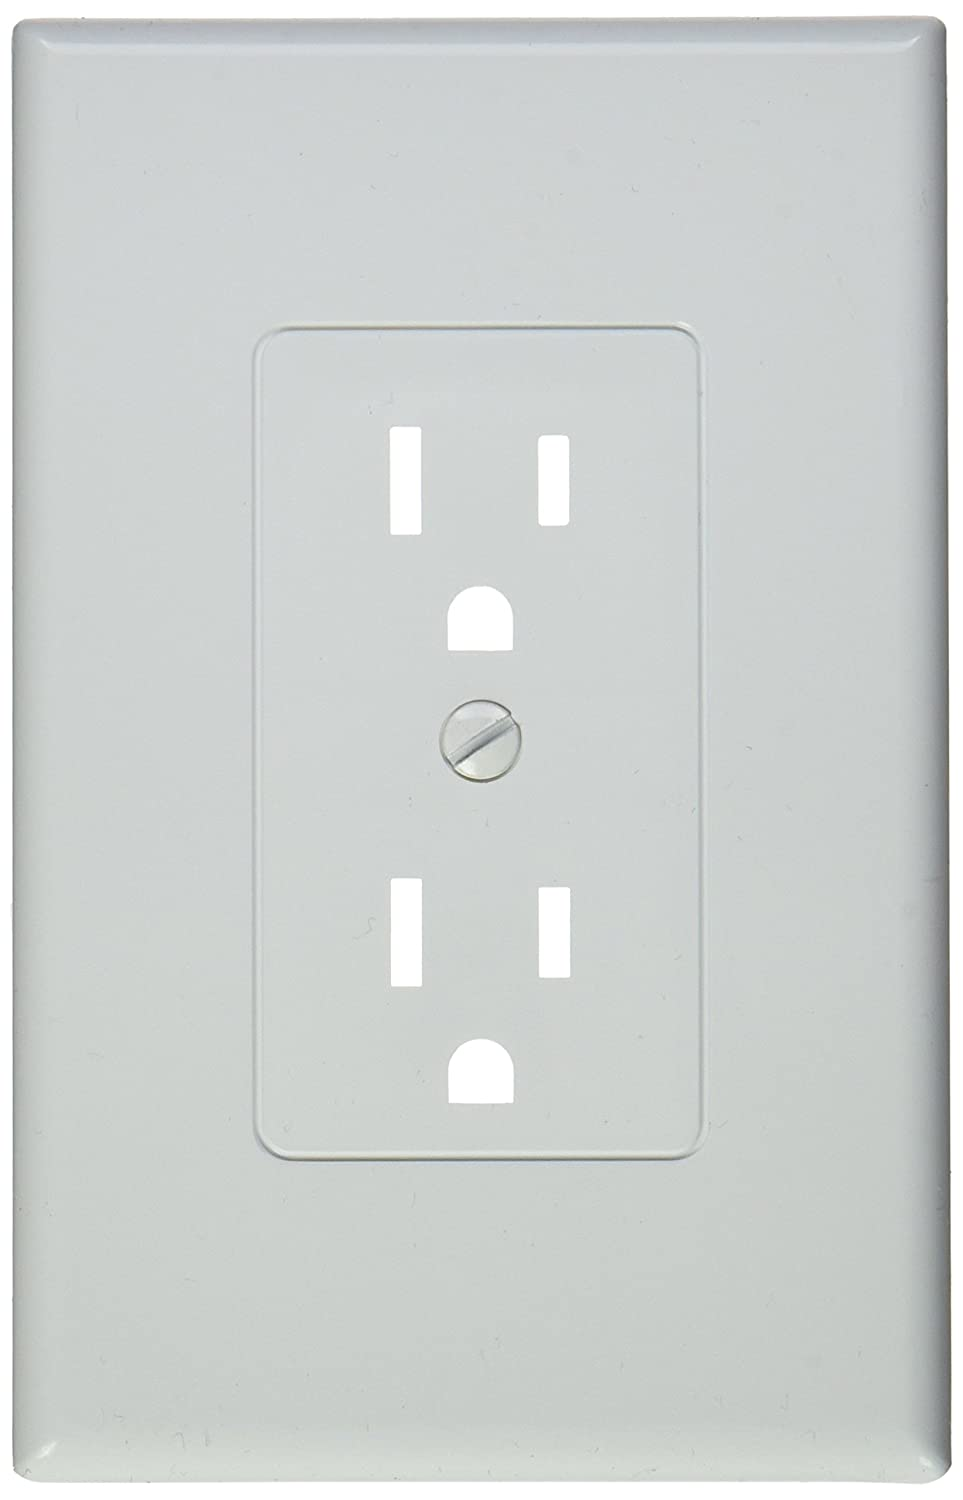 TayMac MW2500W Decorator Cover Nonmetallic Wallplate, One Grounded Duplex, Single Gang, White Smooth - Pack of 5